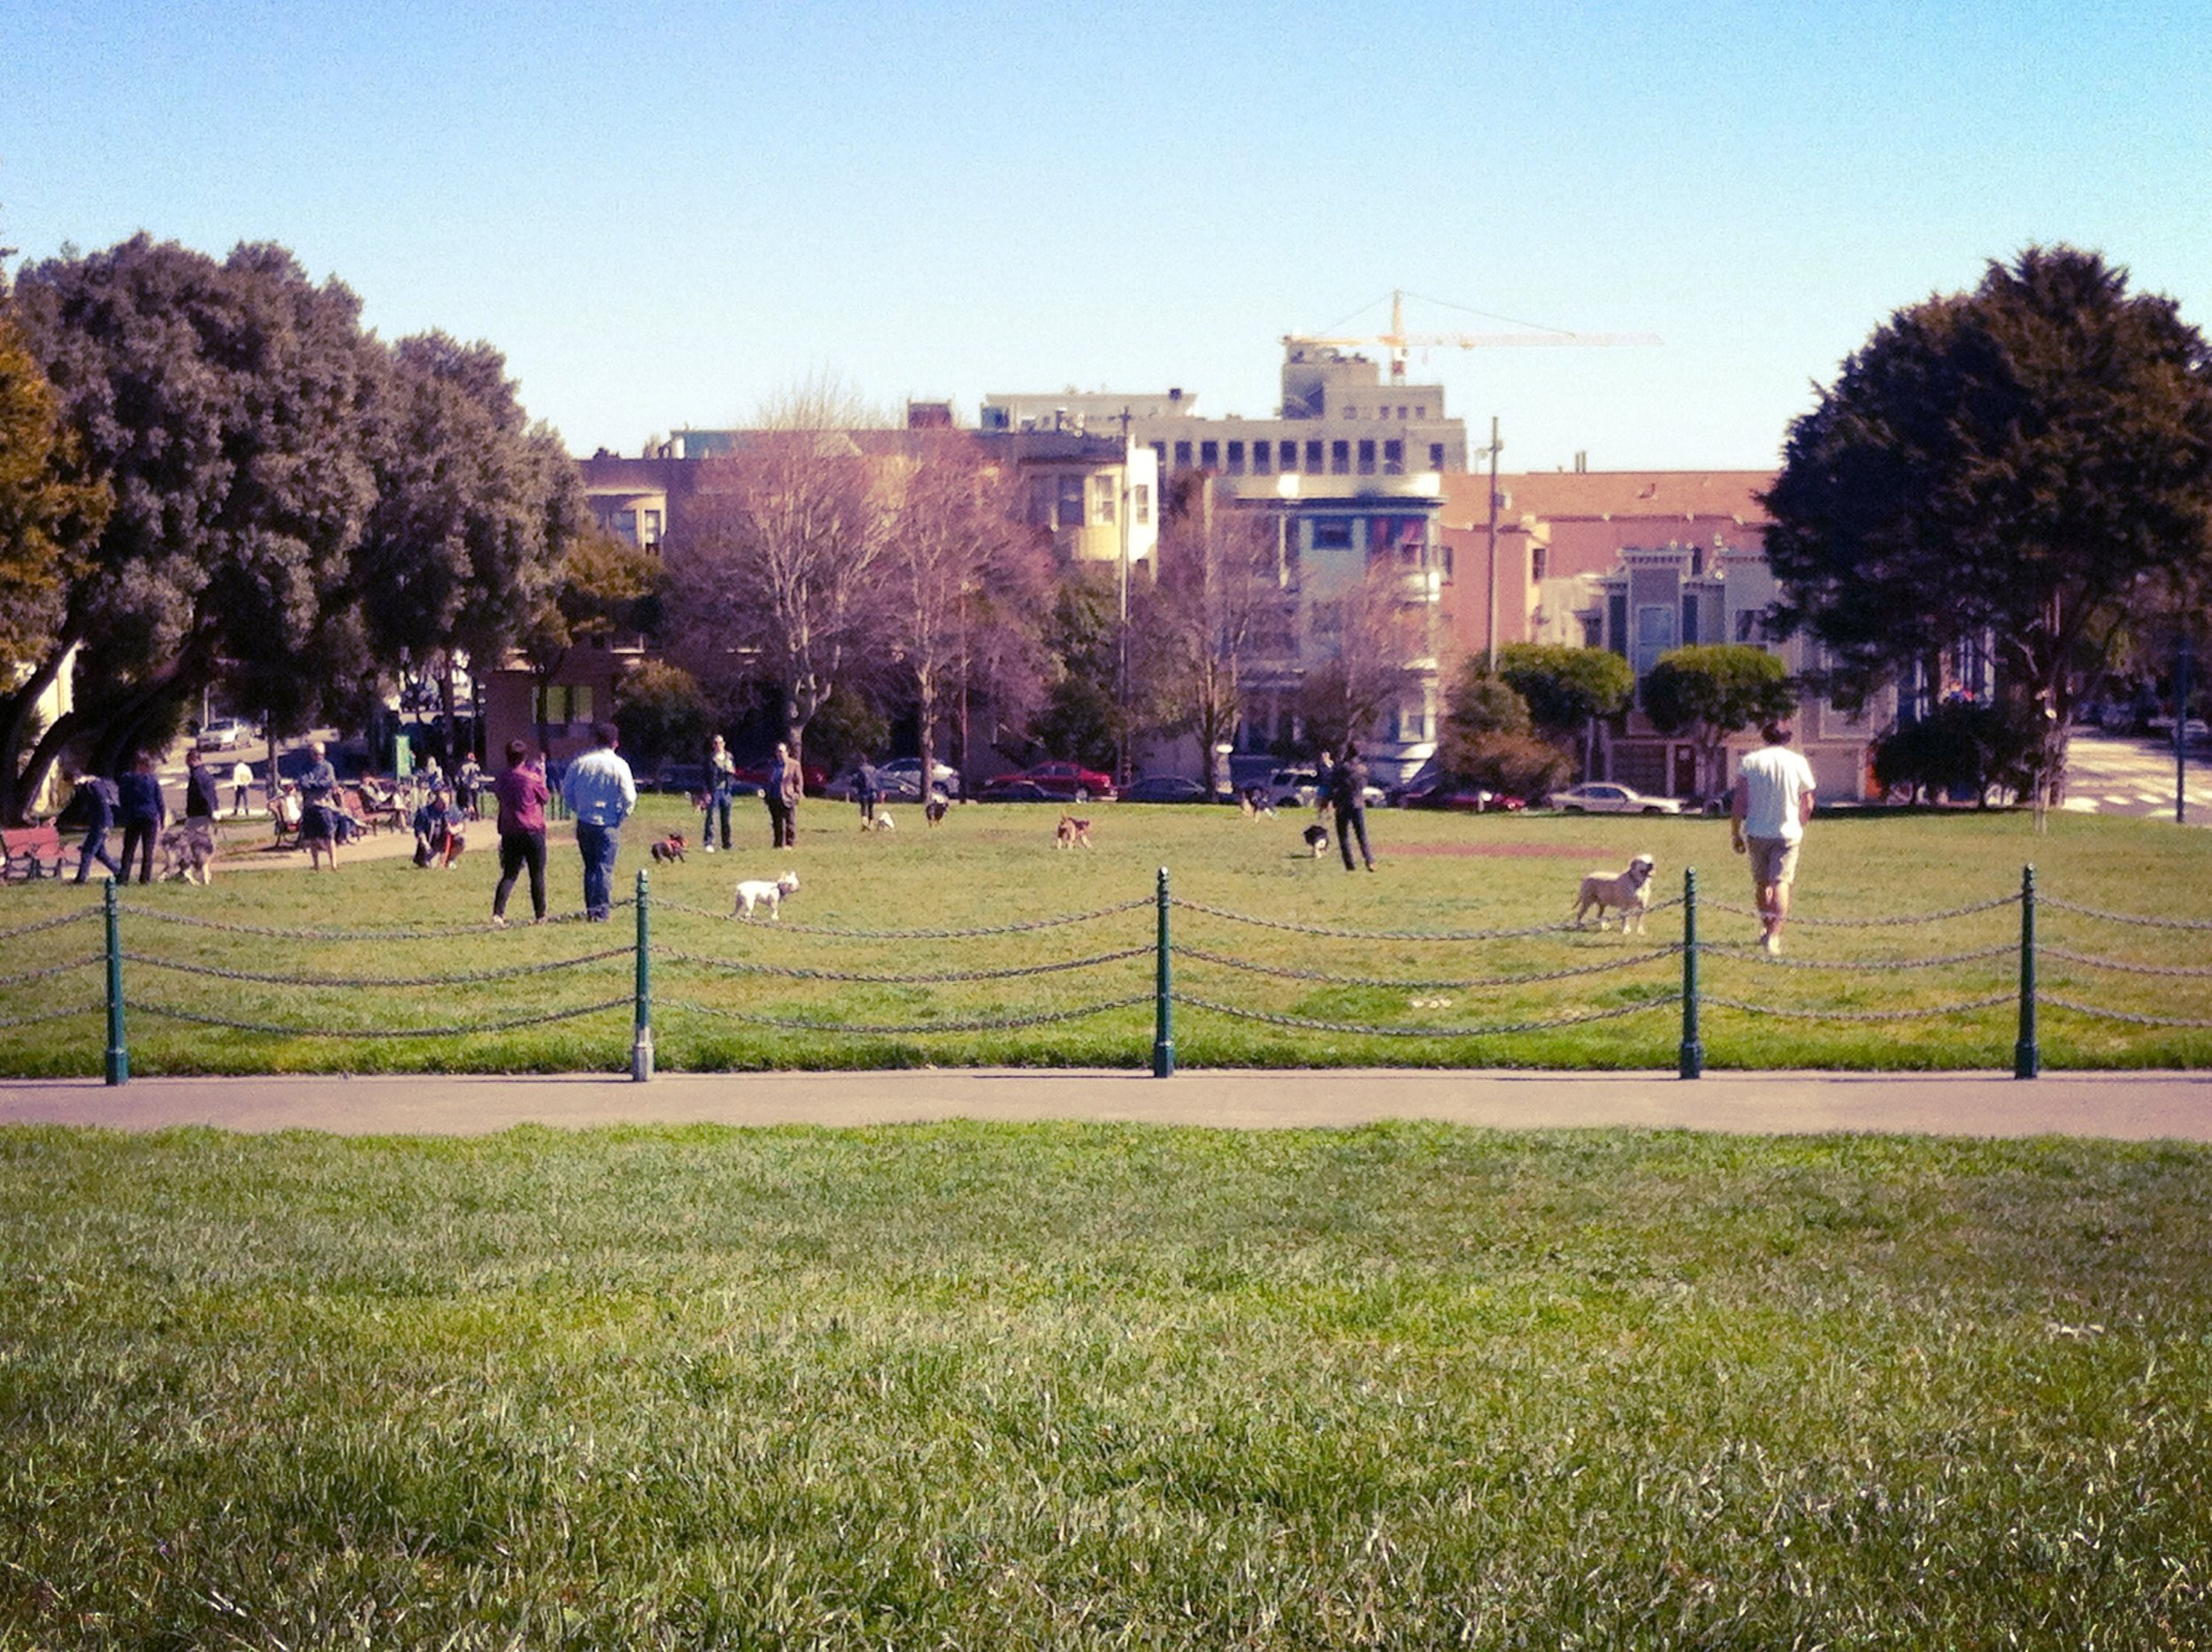 A little Duboce Park on Saturday morning